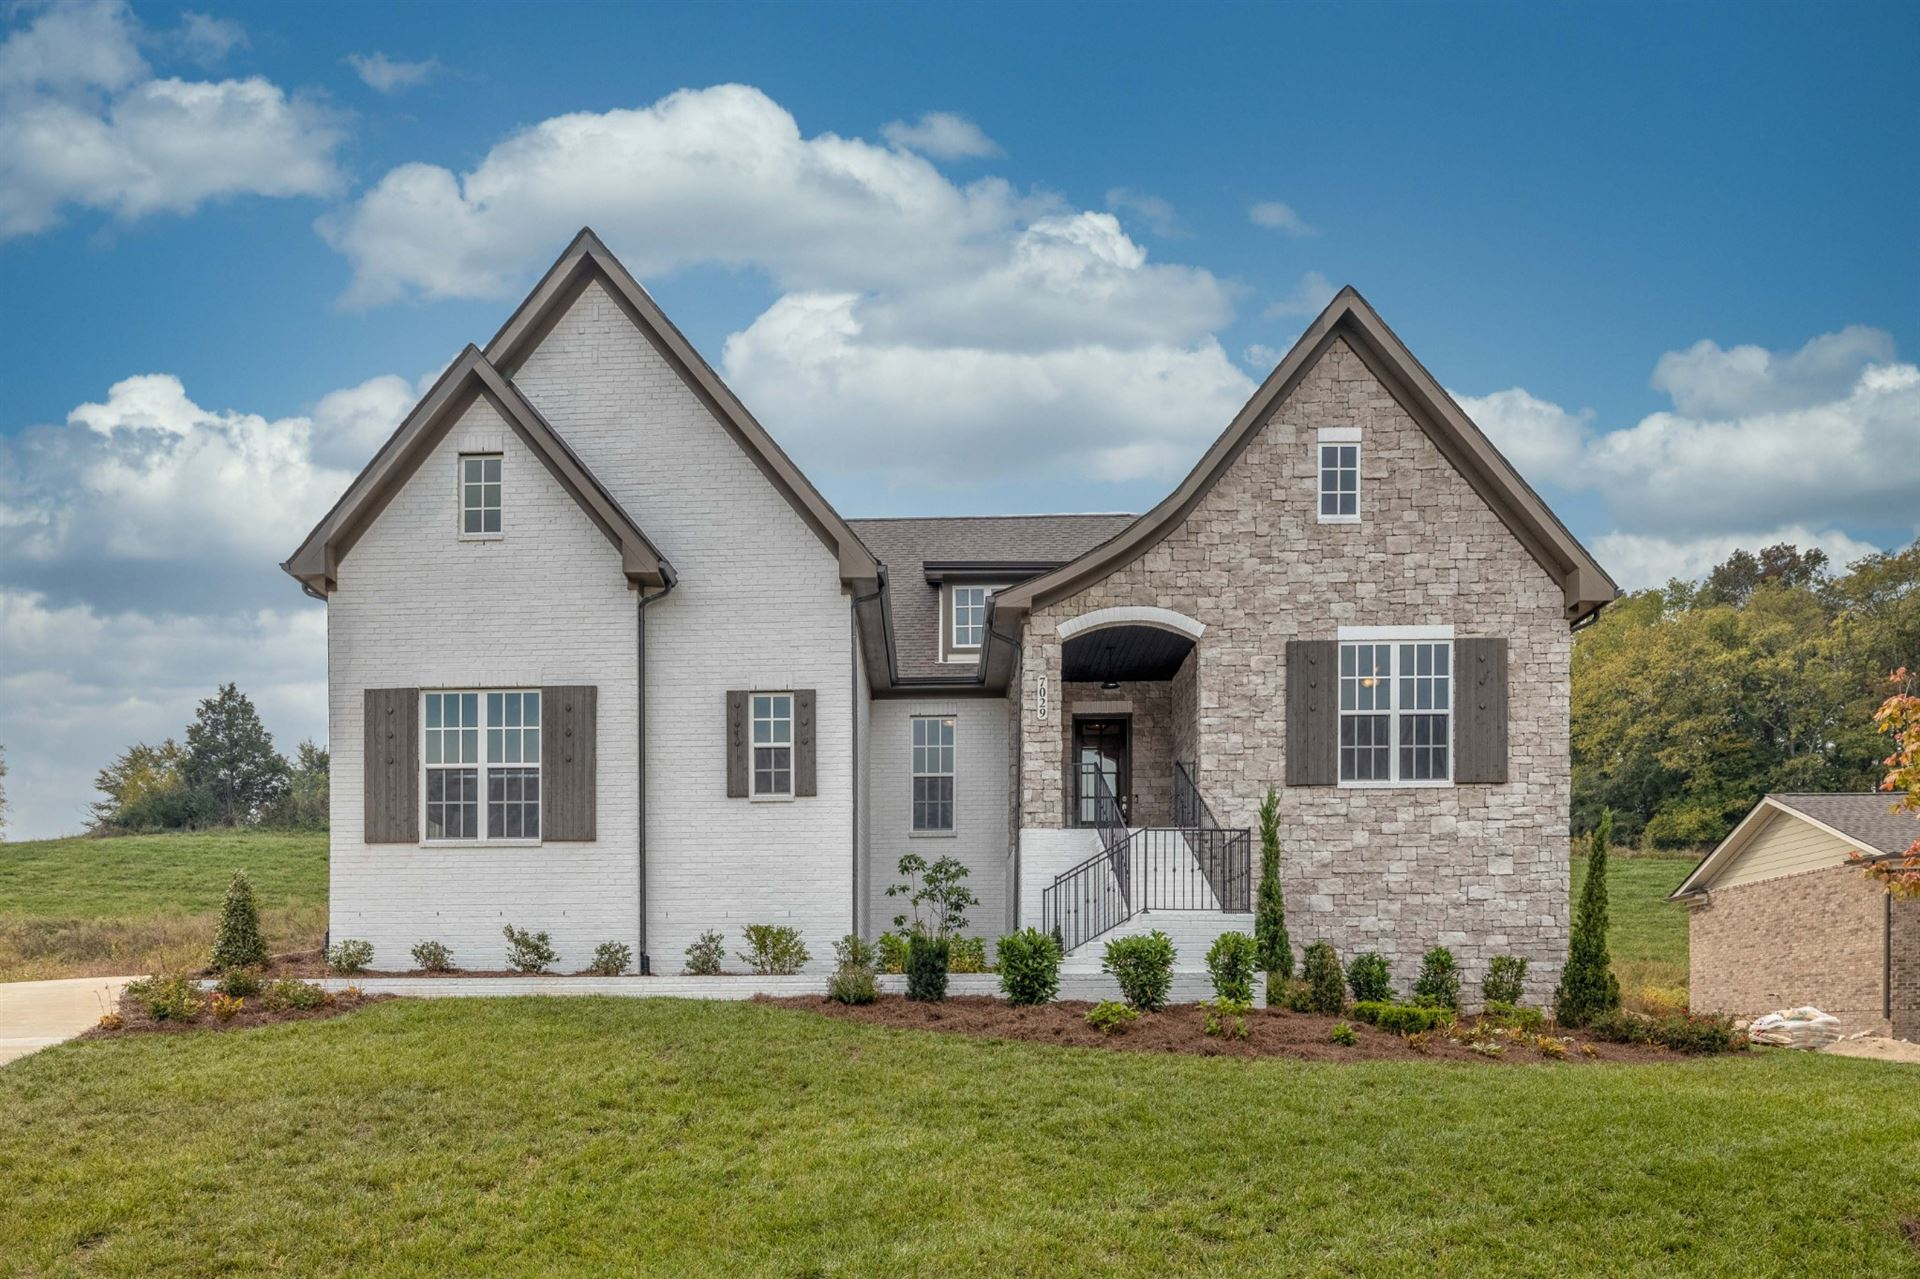 7029 Vineyard Valley Dr (108), College Grove, TN 37046 - MLS#: 2122786